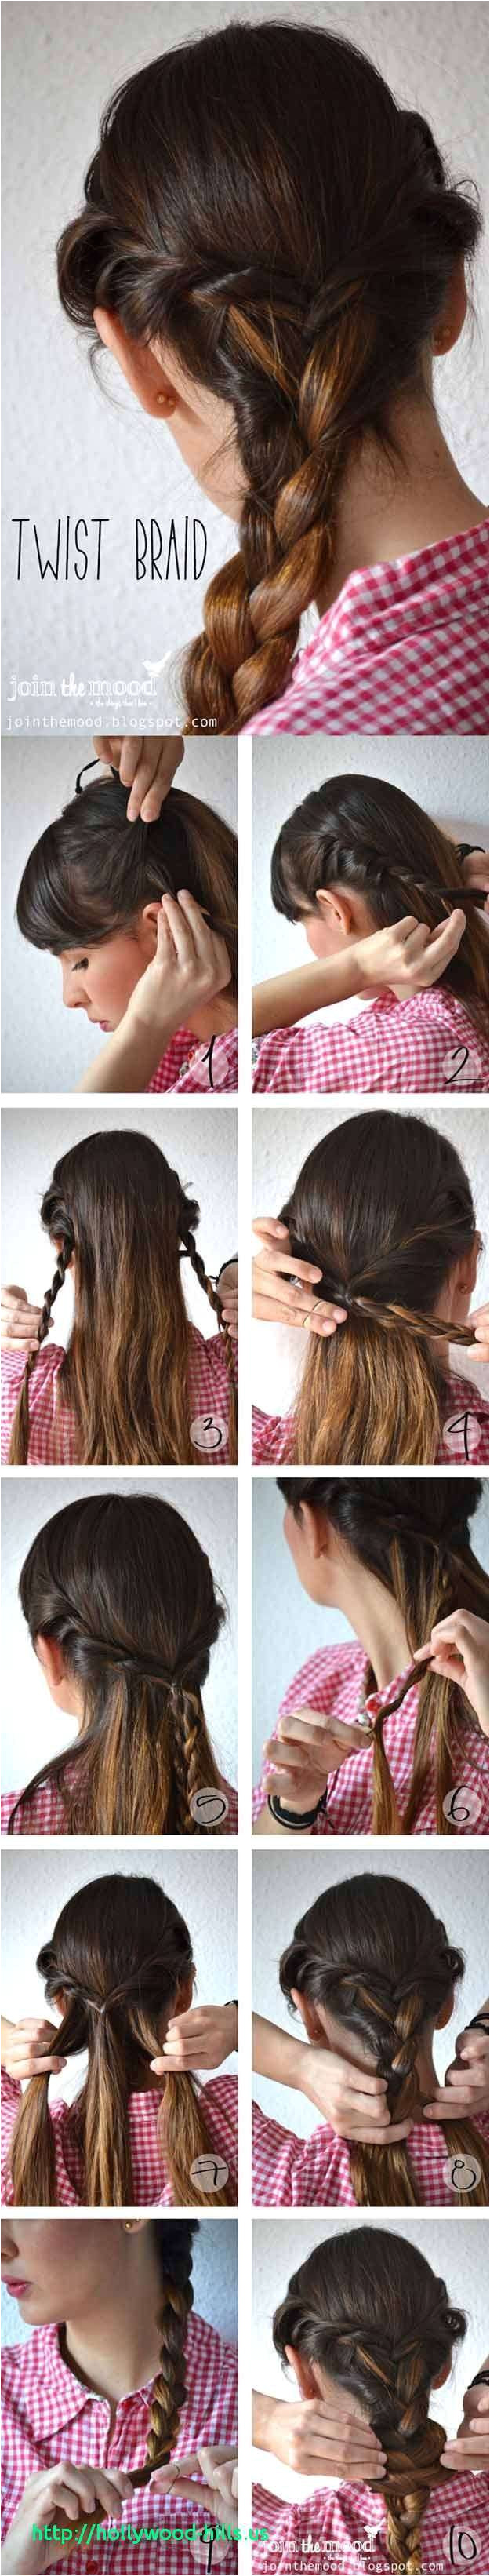 Cute and Easy Hairstyles for School Pics 5 Cute and Easy Hairstyles for School Best 5